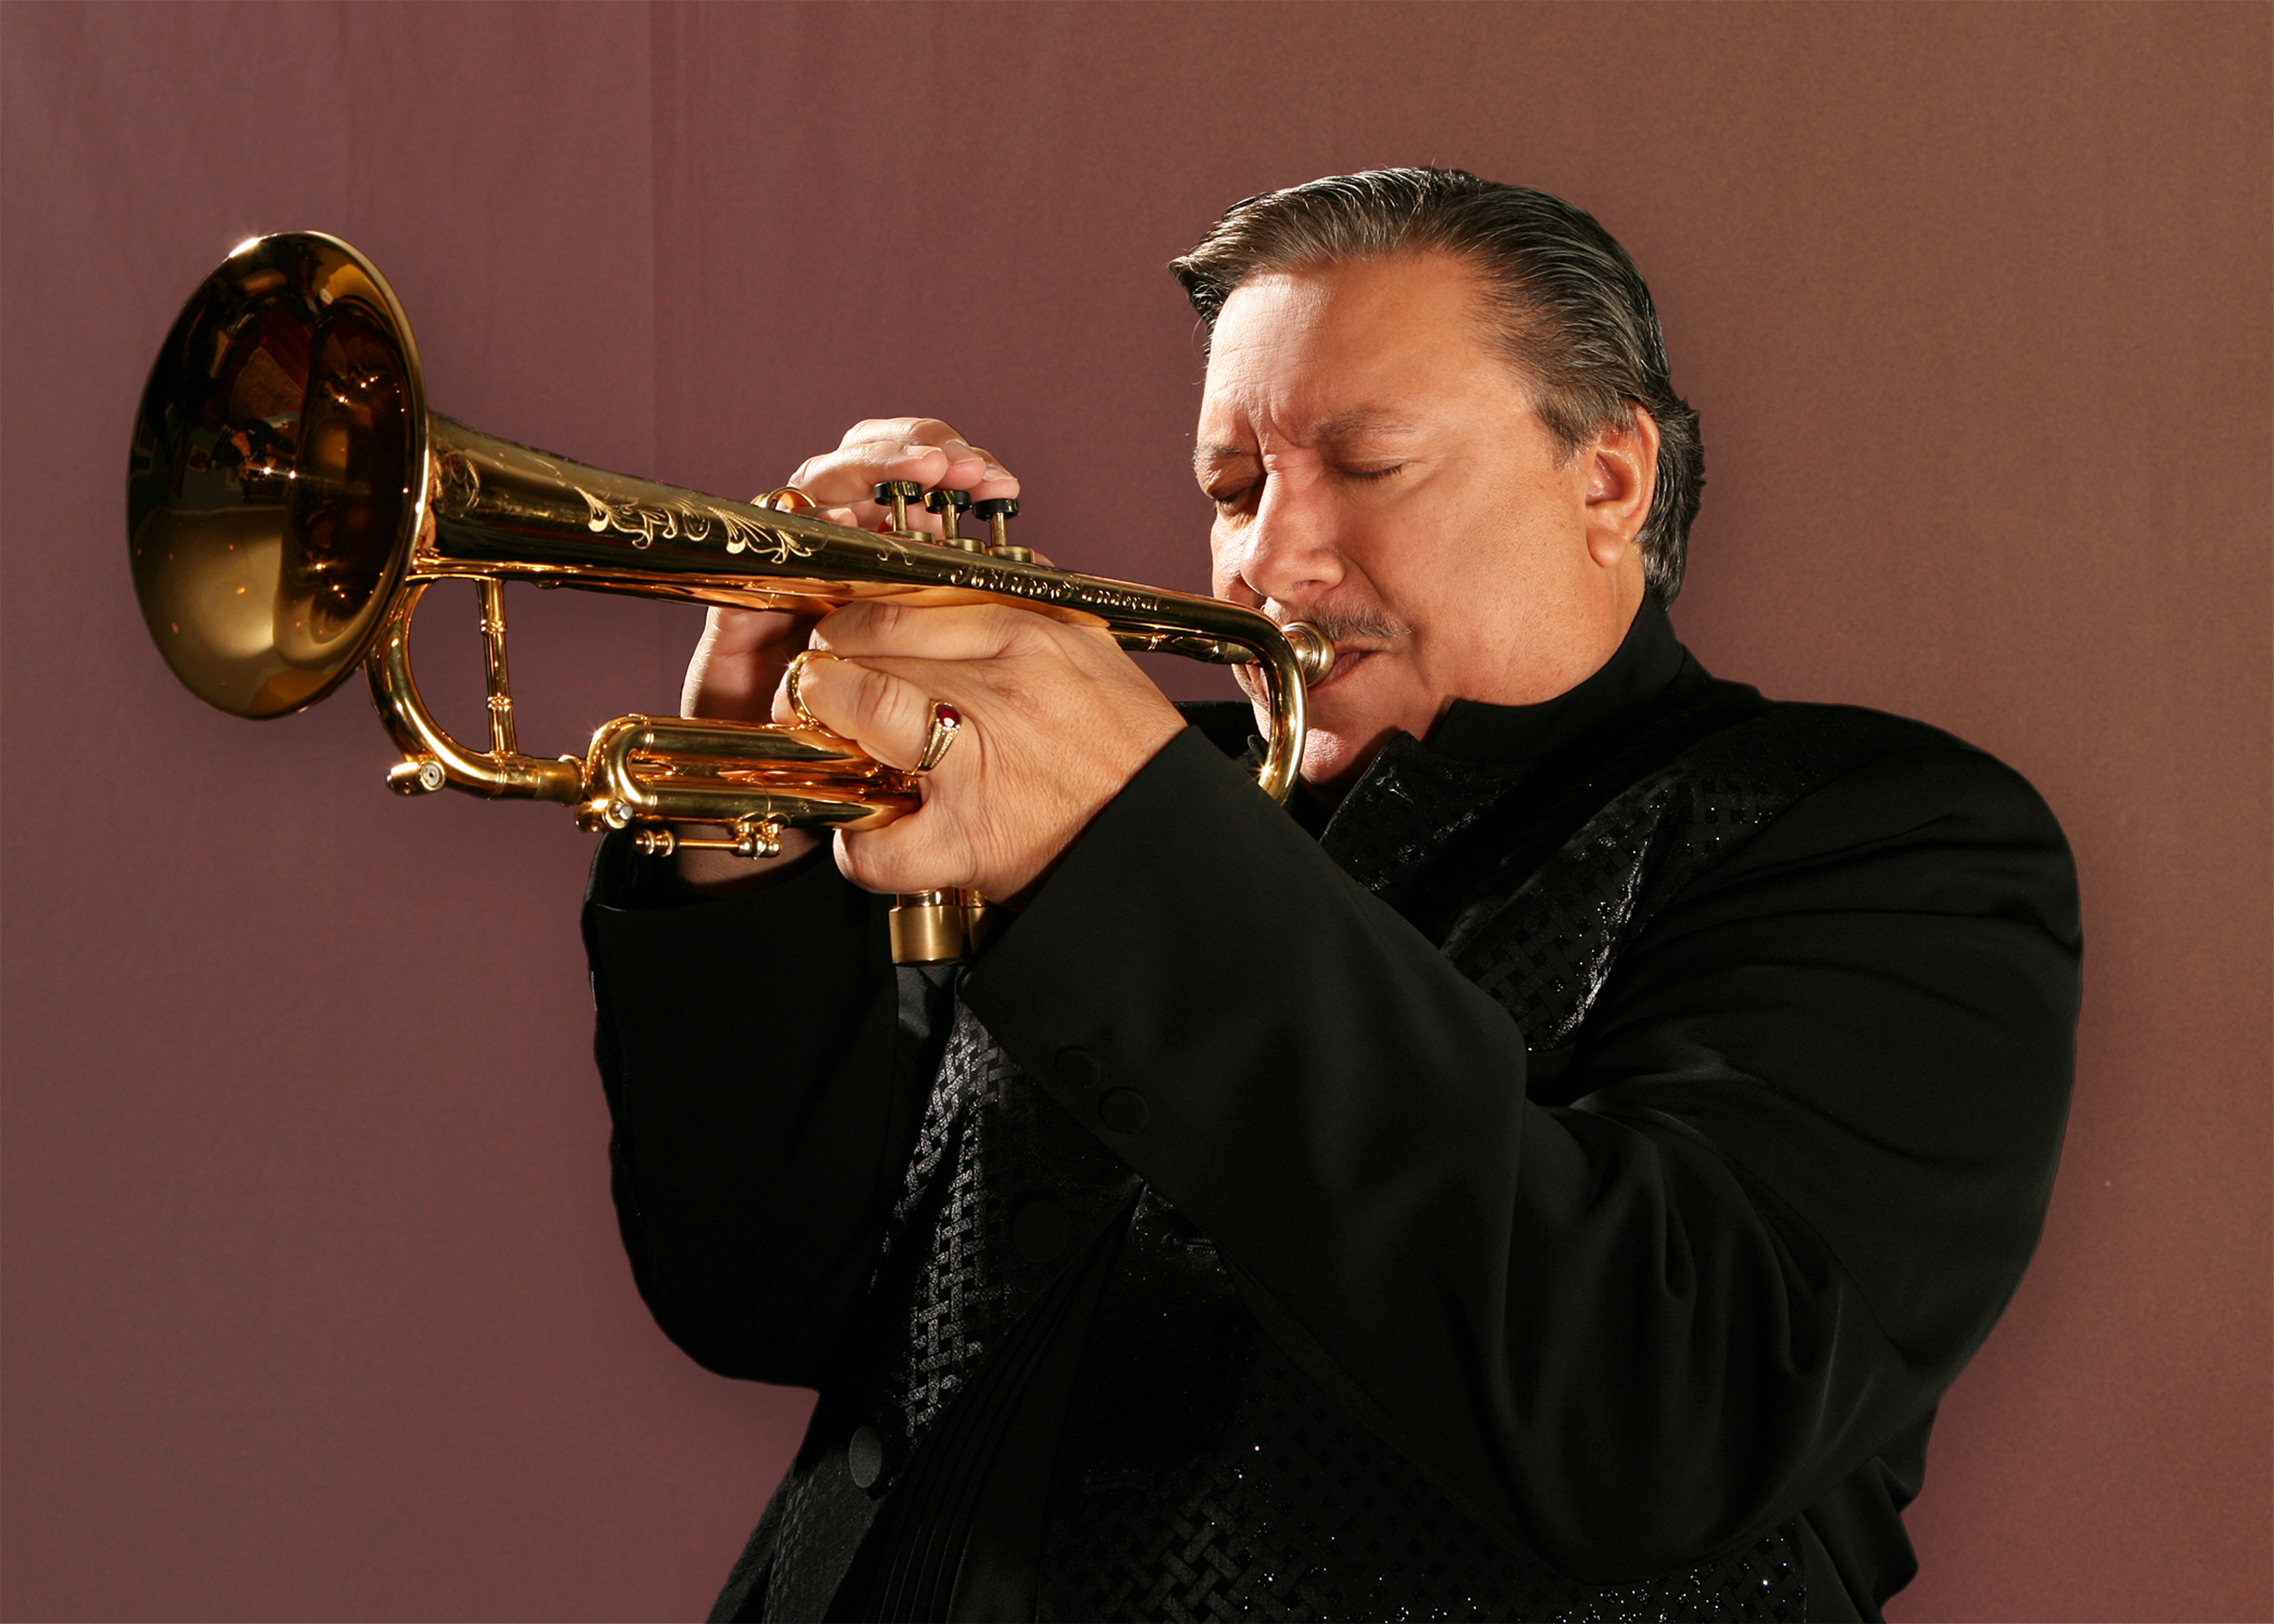 Sandoval returns: the Cuban-American jazz icon last headlined the festival in 2007.